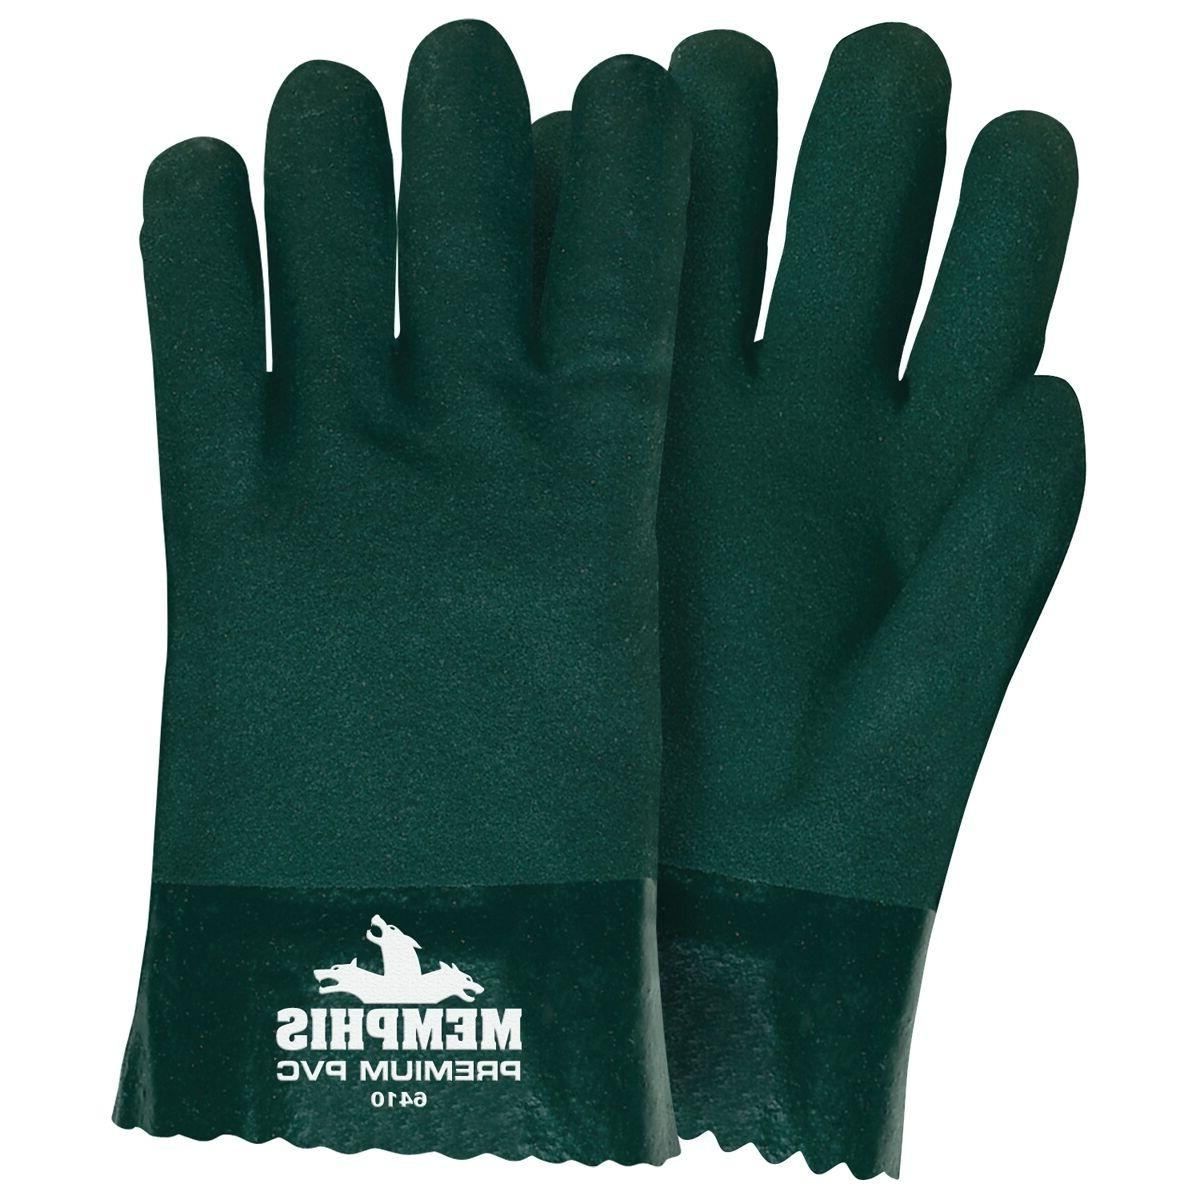 6410 double dipped pvc coated gloves jersey